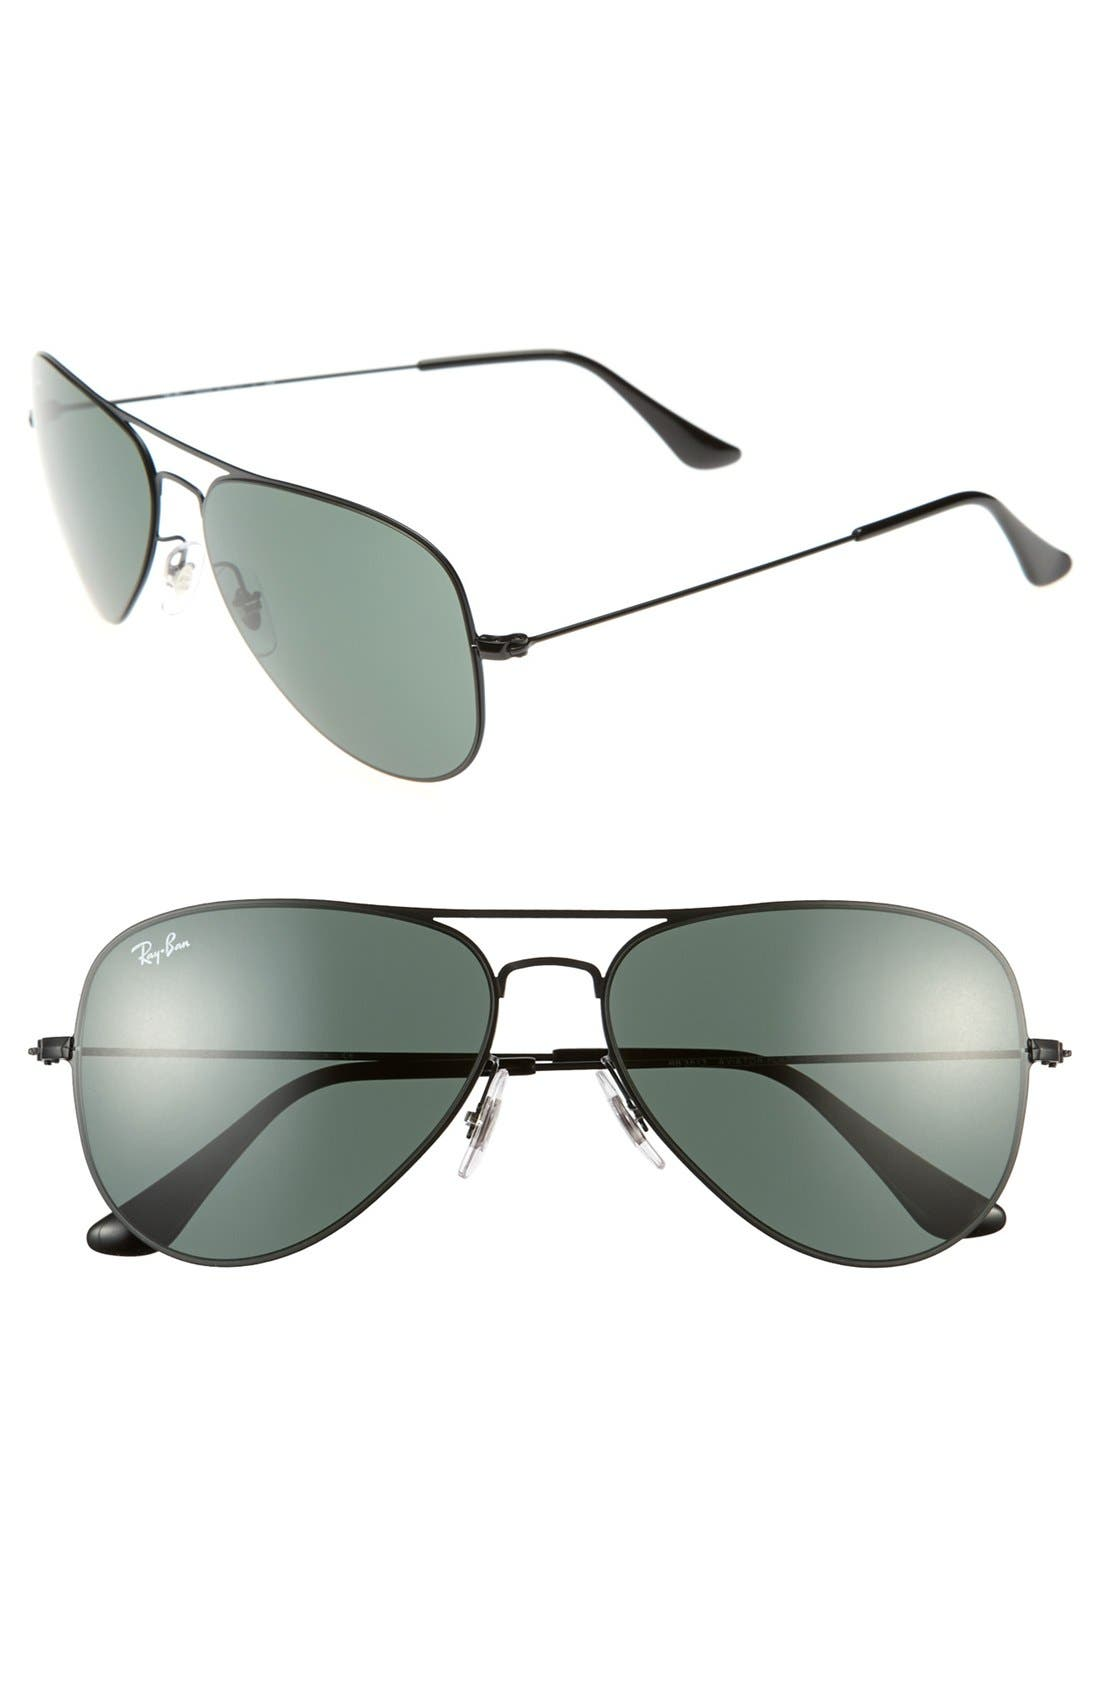 Main Image - Ray-Ban 'Aviator Flat Metal' 58mm Sunglasses